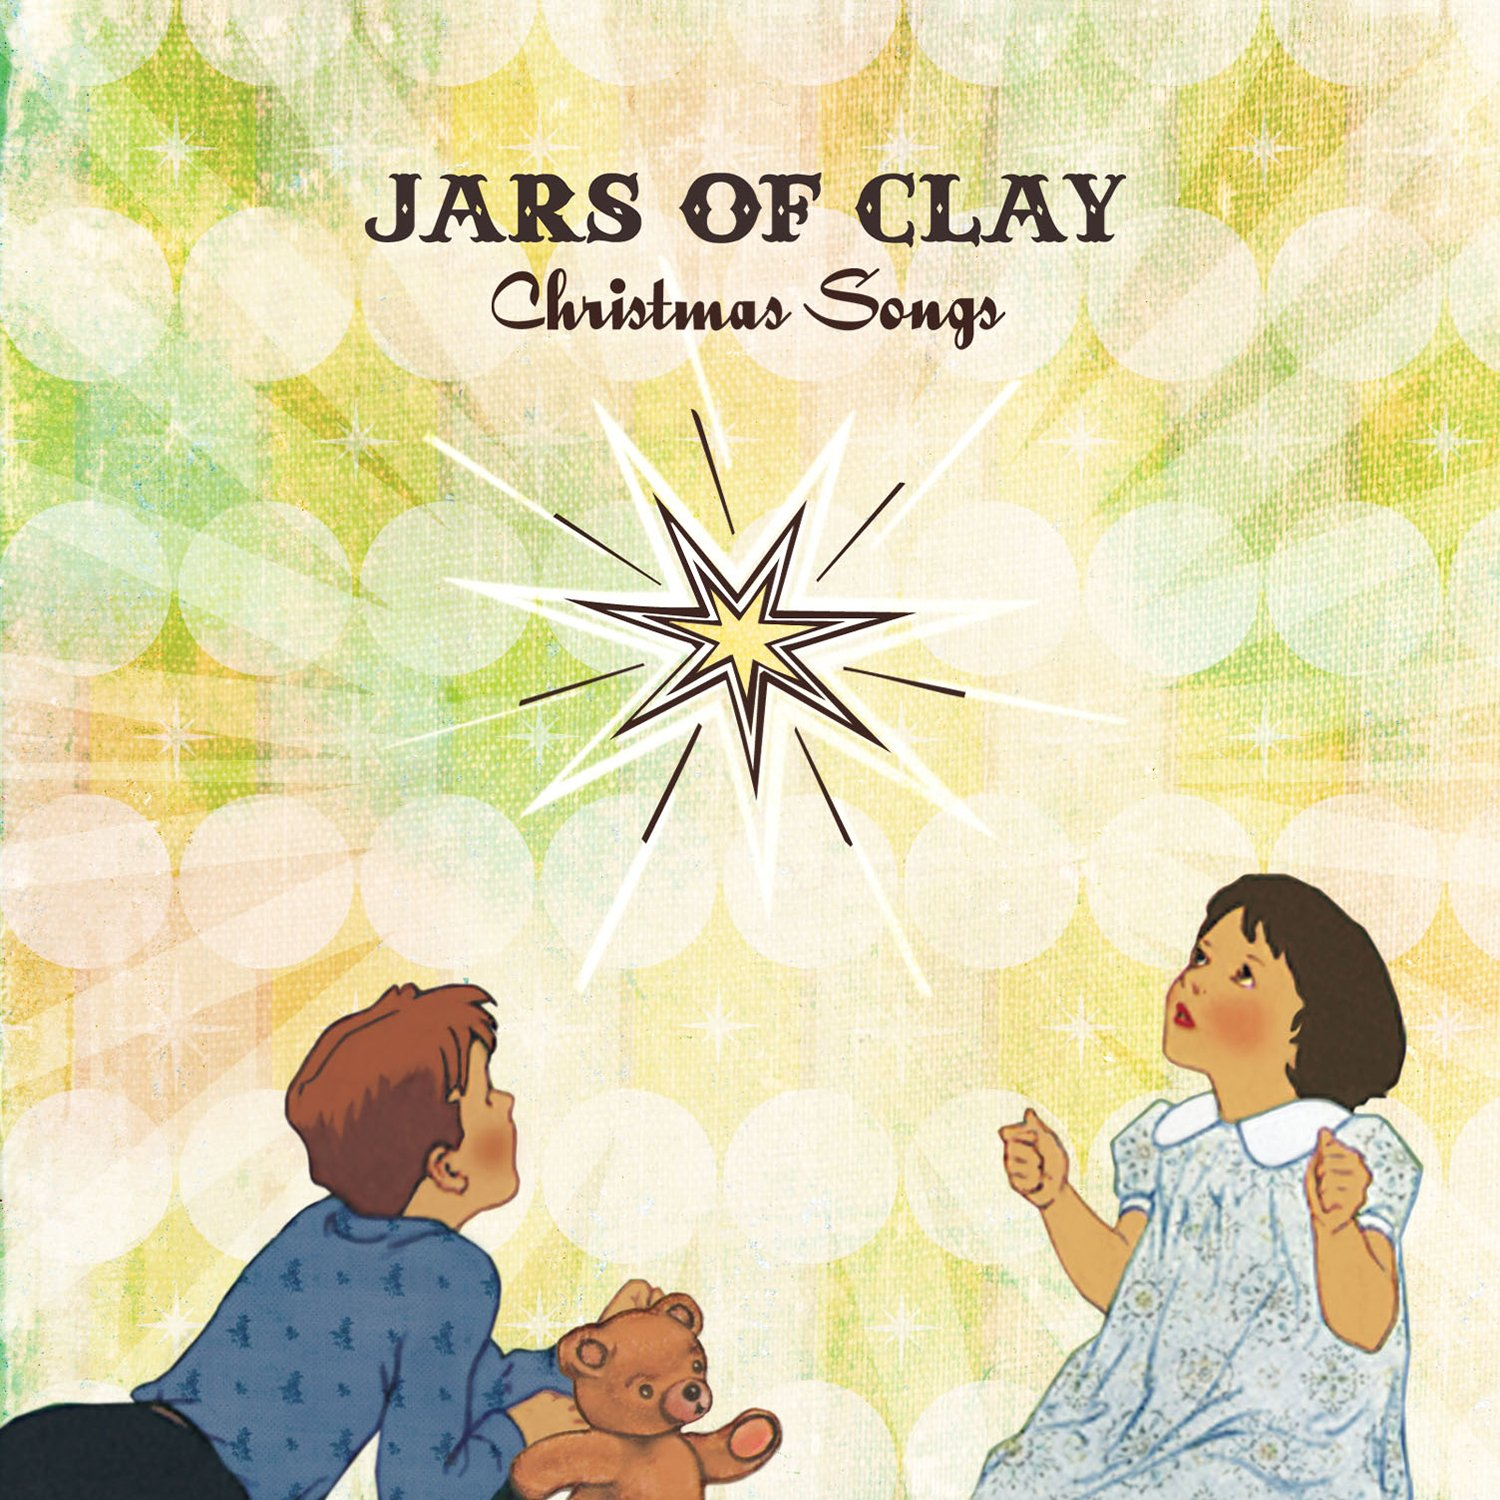 Jars Of Clay - Christmas Songs by Jars of Clay - Amazon.com Music